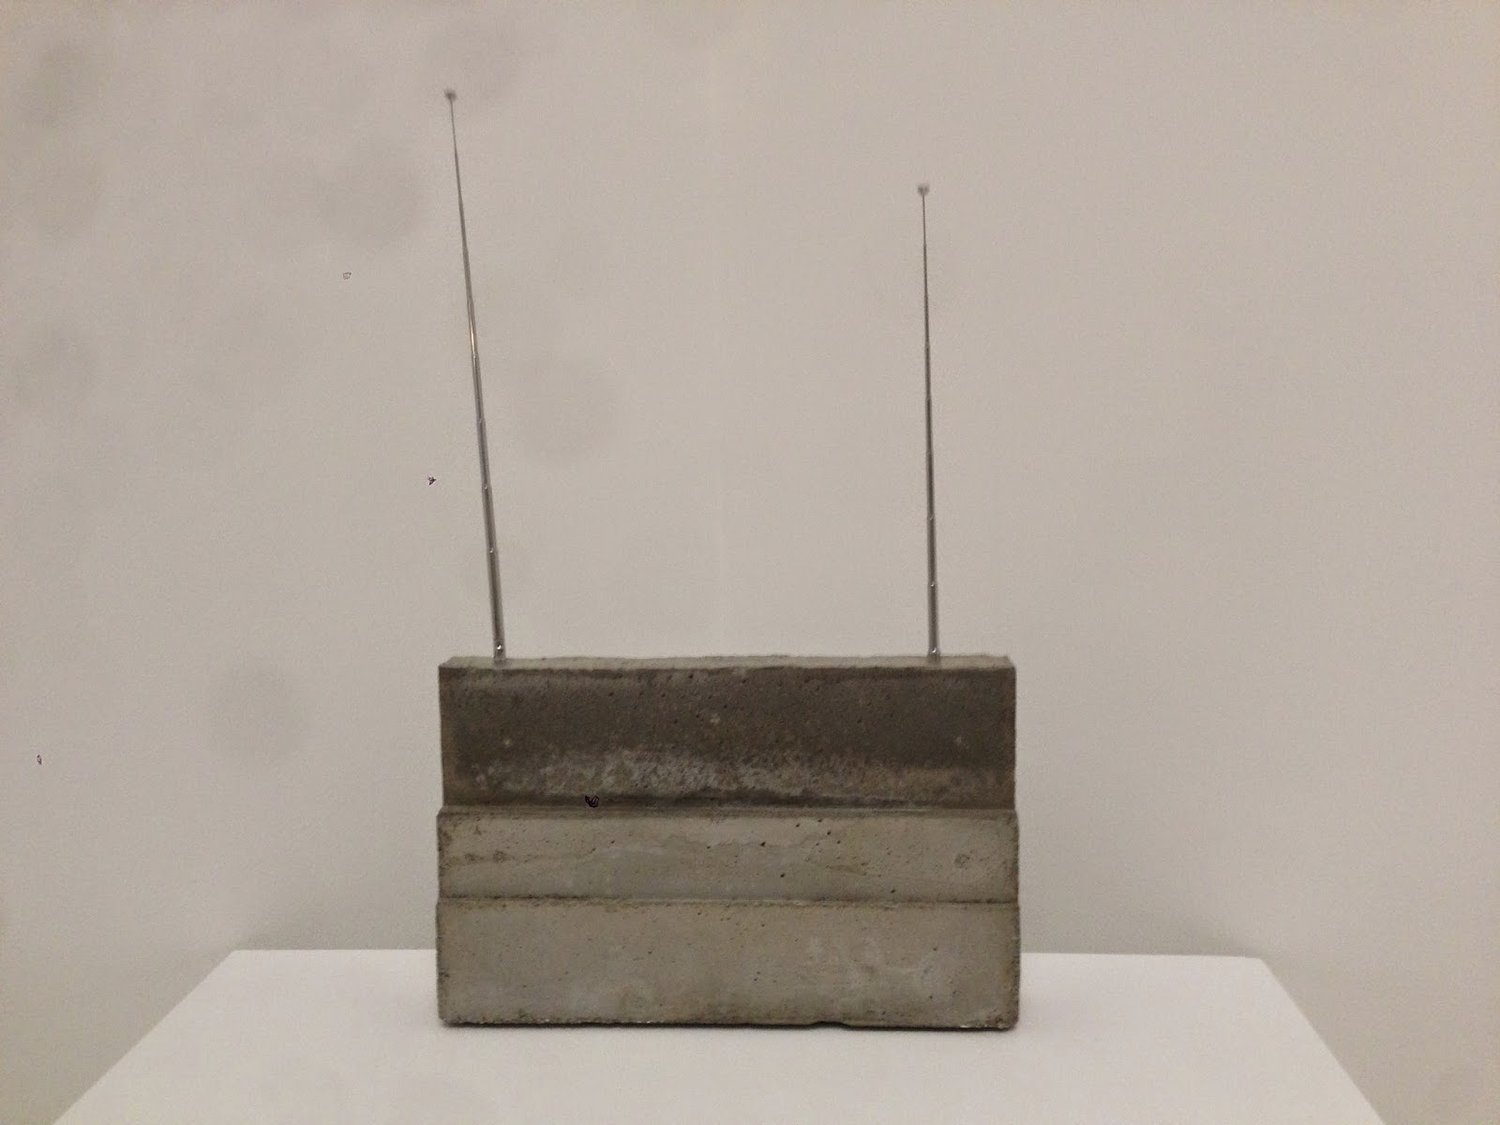 "Isa Genzken  World Receiver  1987-89, Concrete, steel, and metal radio antennas. Overall: 84 5⁄8 x 102 3⁄8 x 15 3⁄4"" (215 x 260 x 40 cm)."